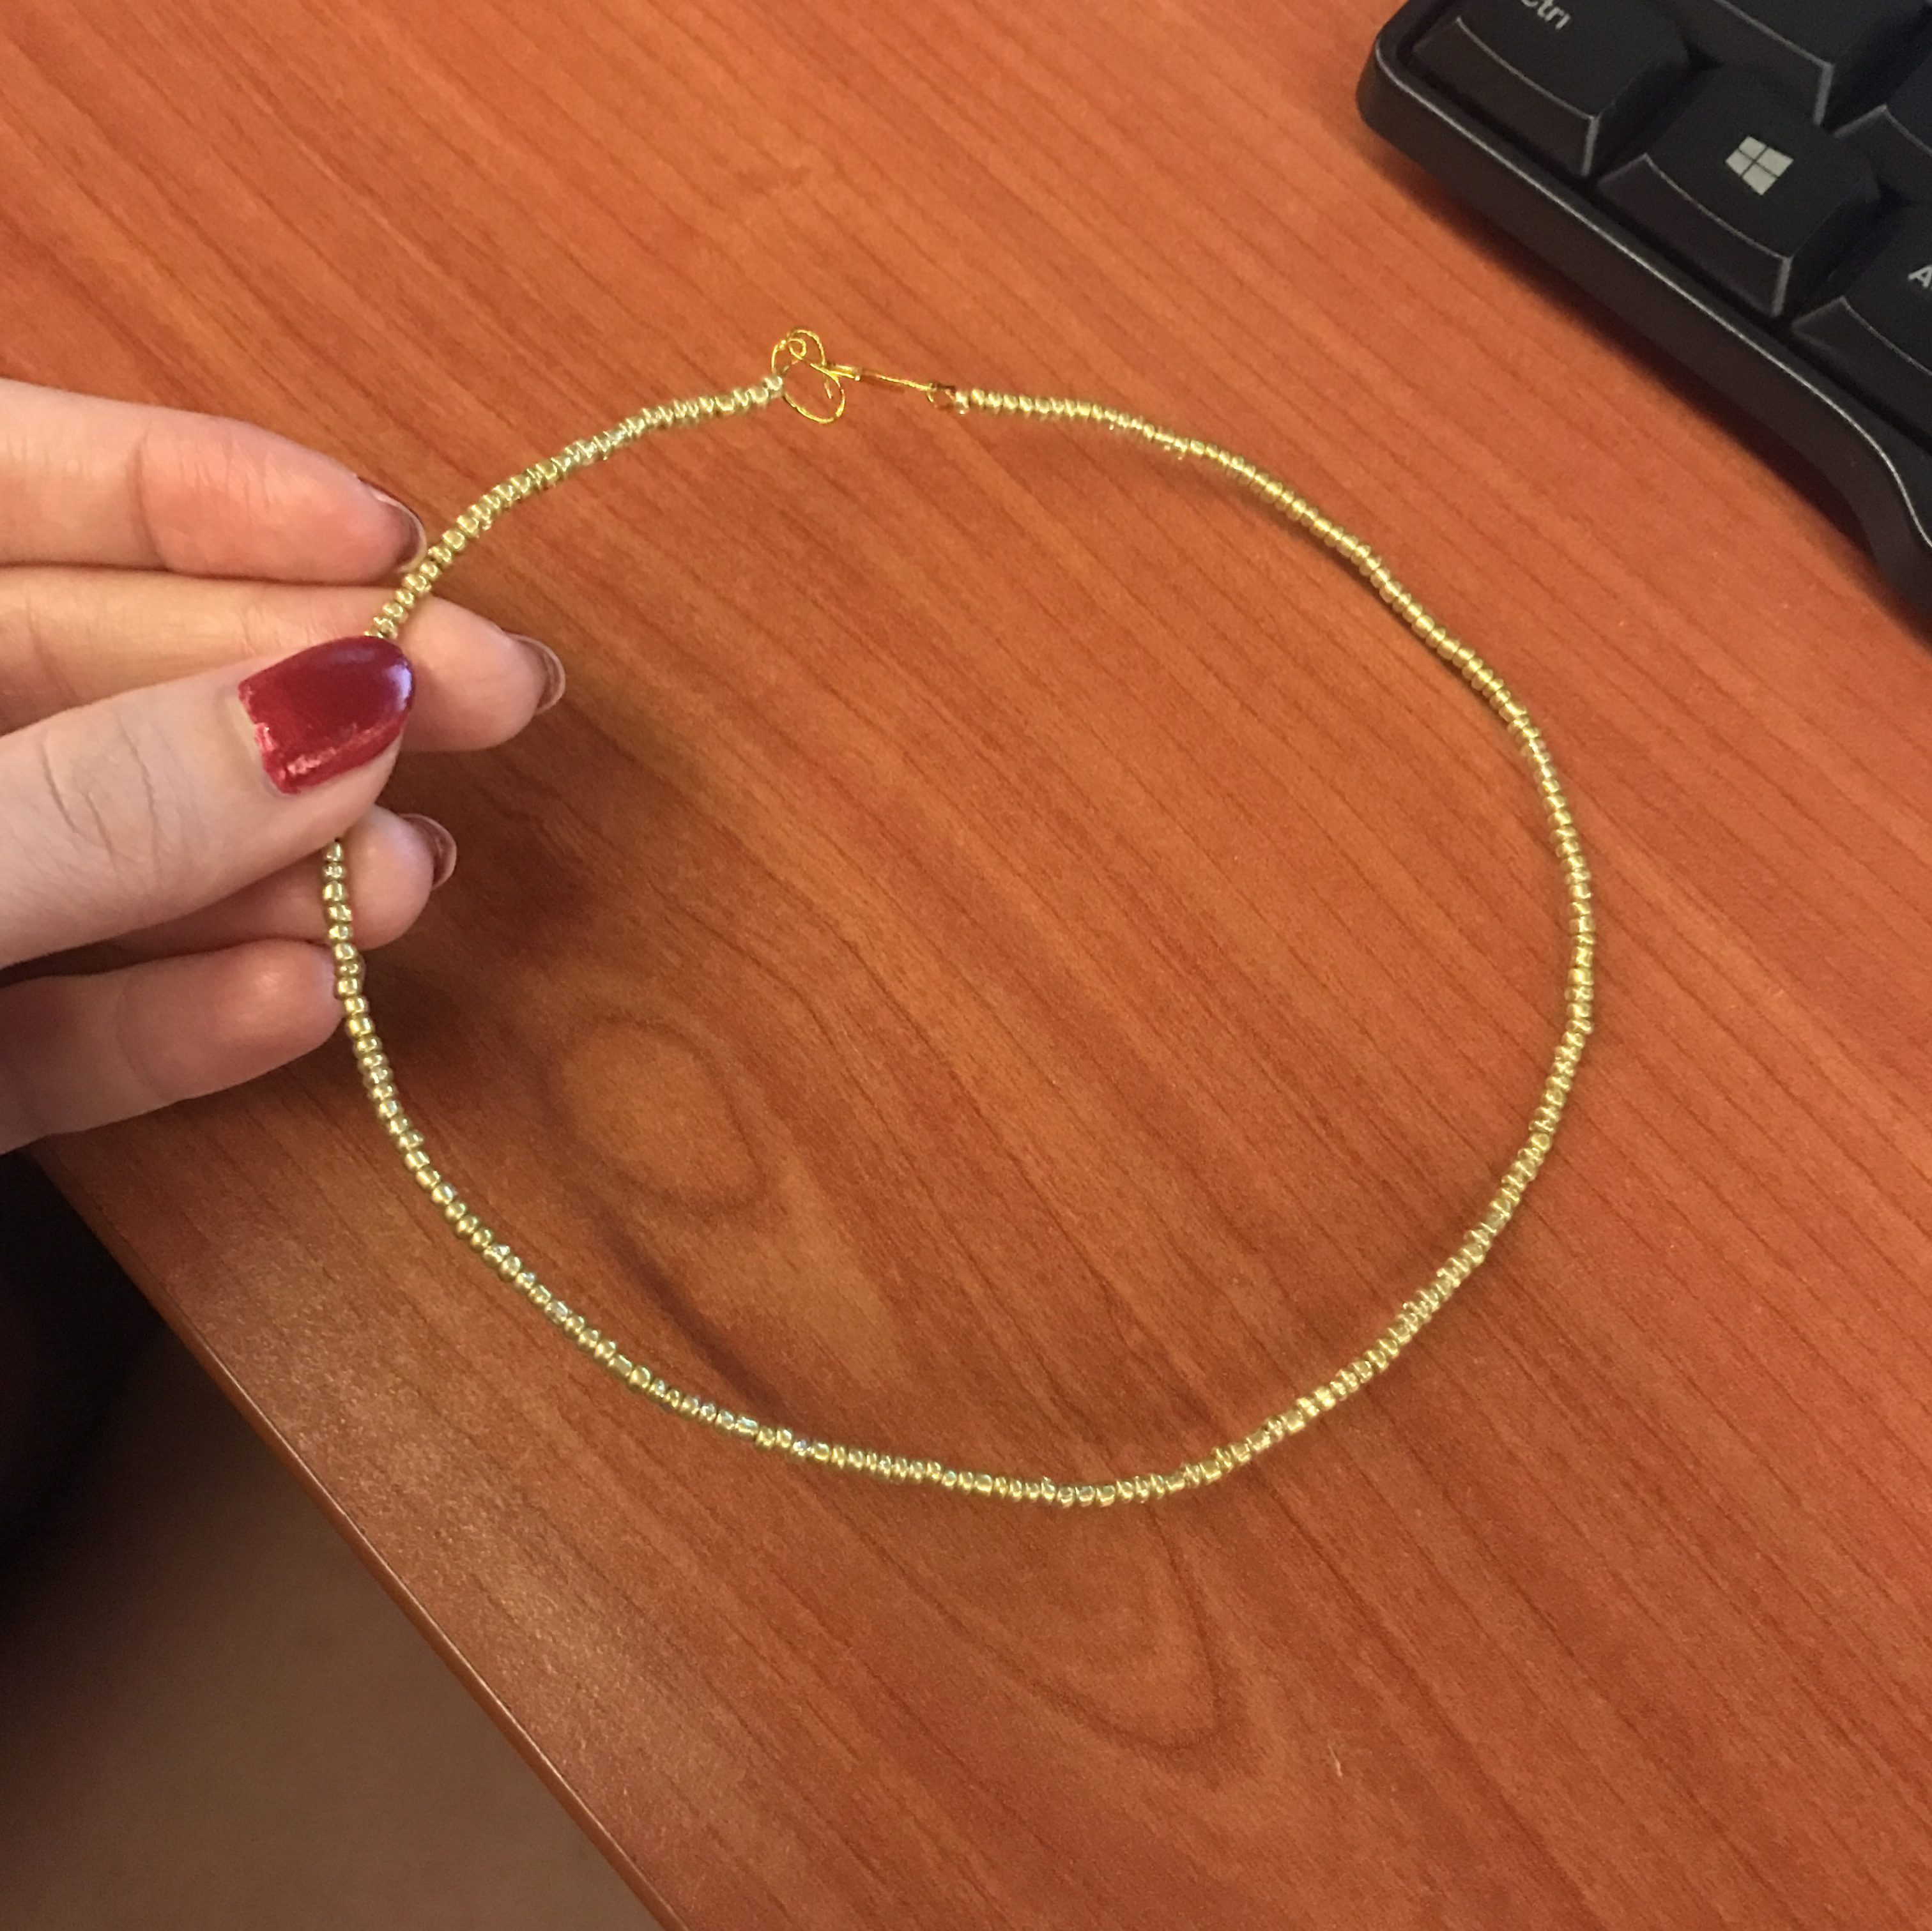 a simple choker I made to fit my neck.